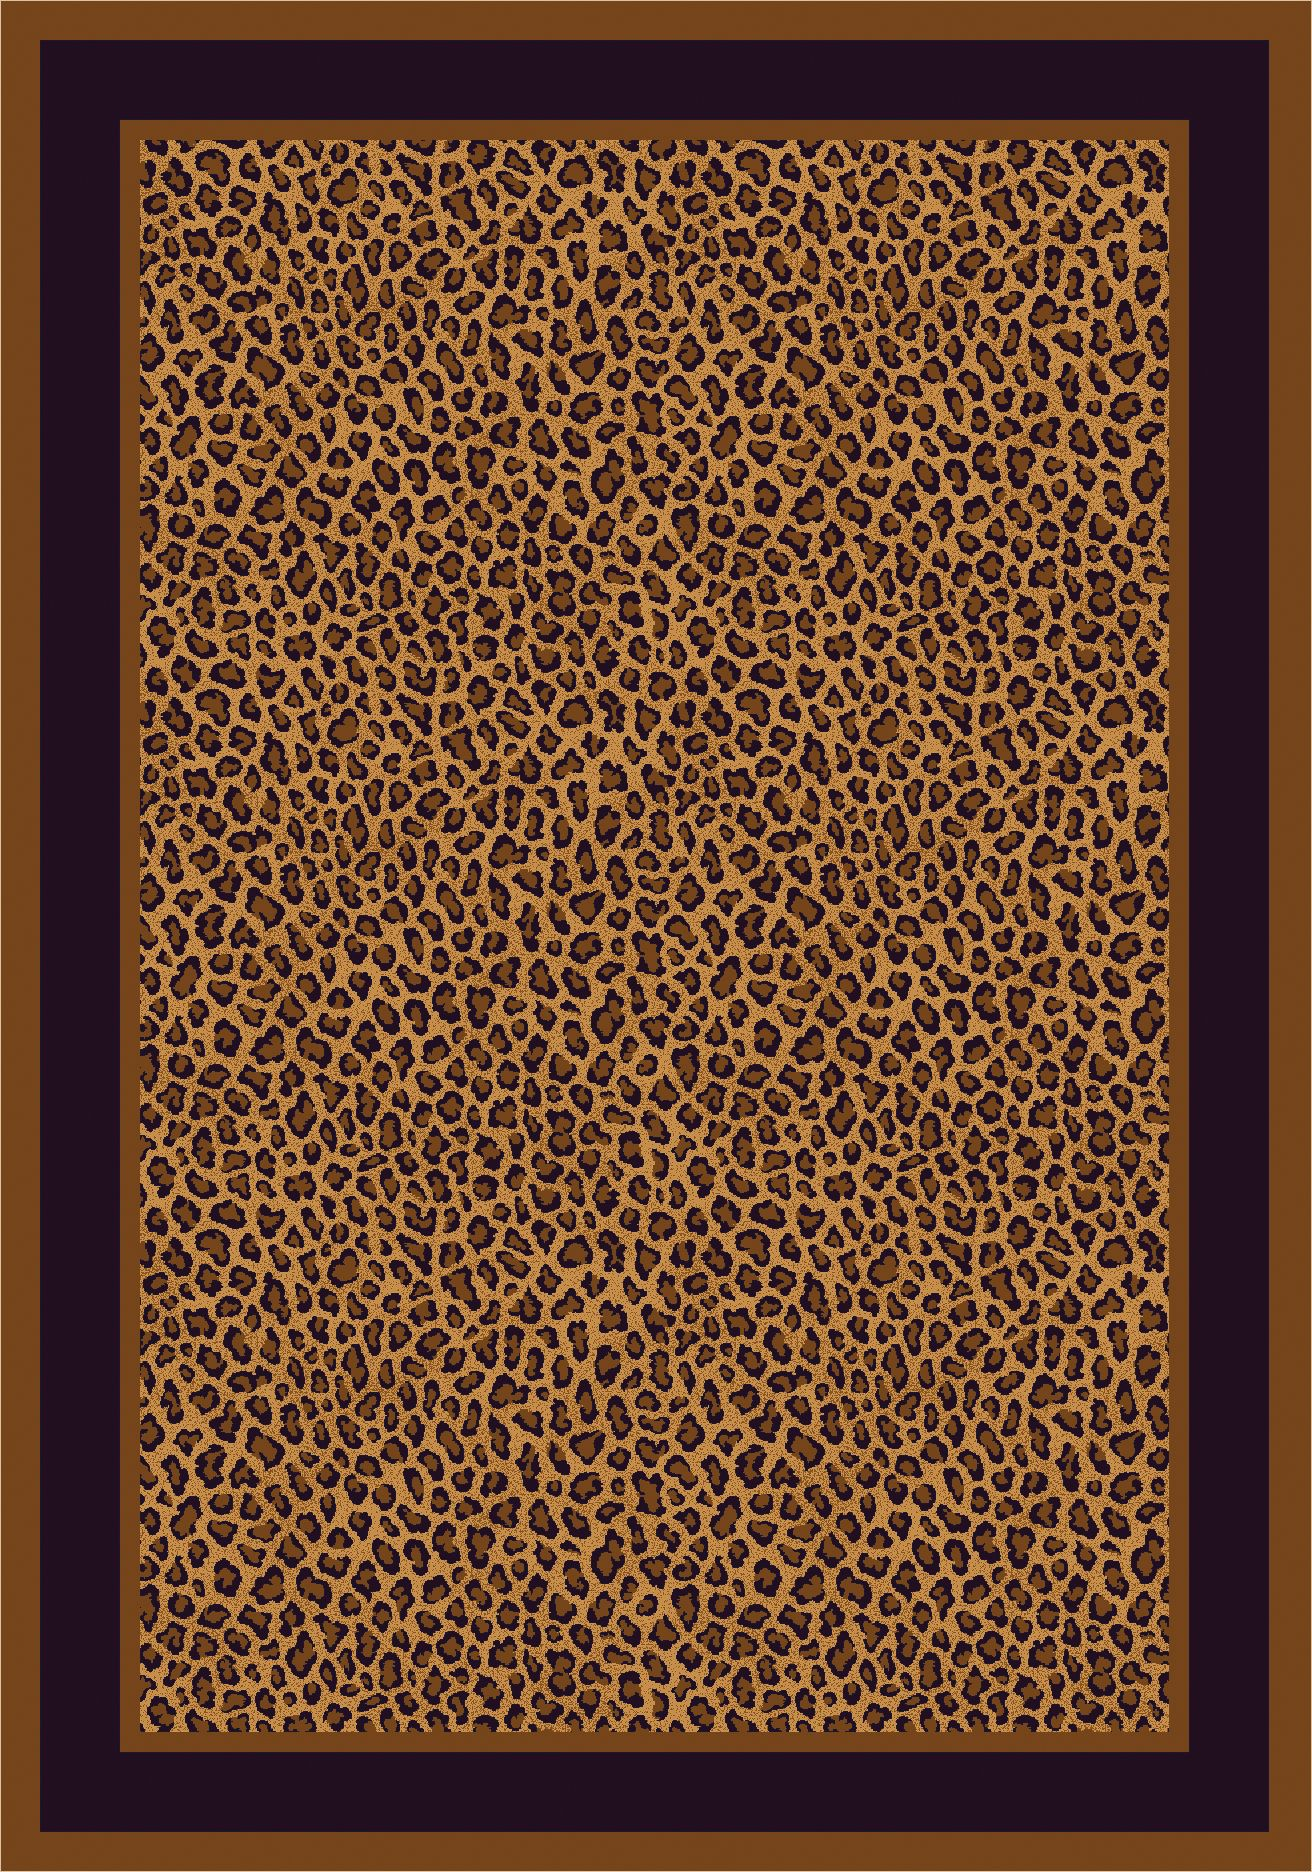 Zimbala Leopard Bordered. For the animal enthusiast, this is your rug! Use this to add sophistication to any room of your home. http://bit.ly/1lwnBqg